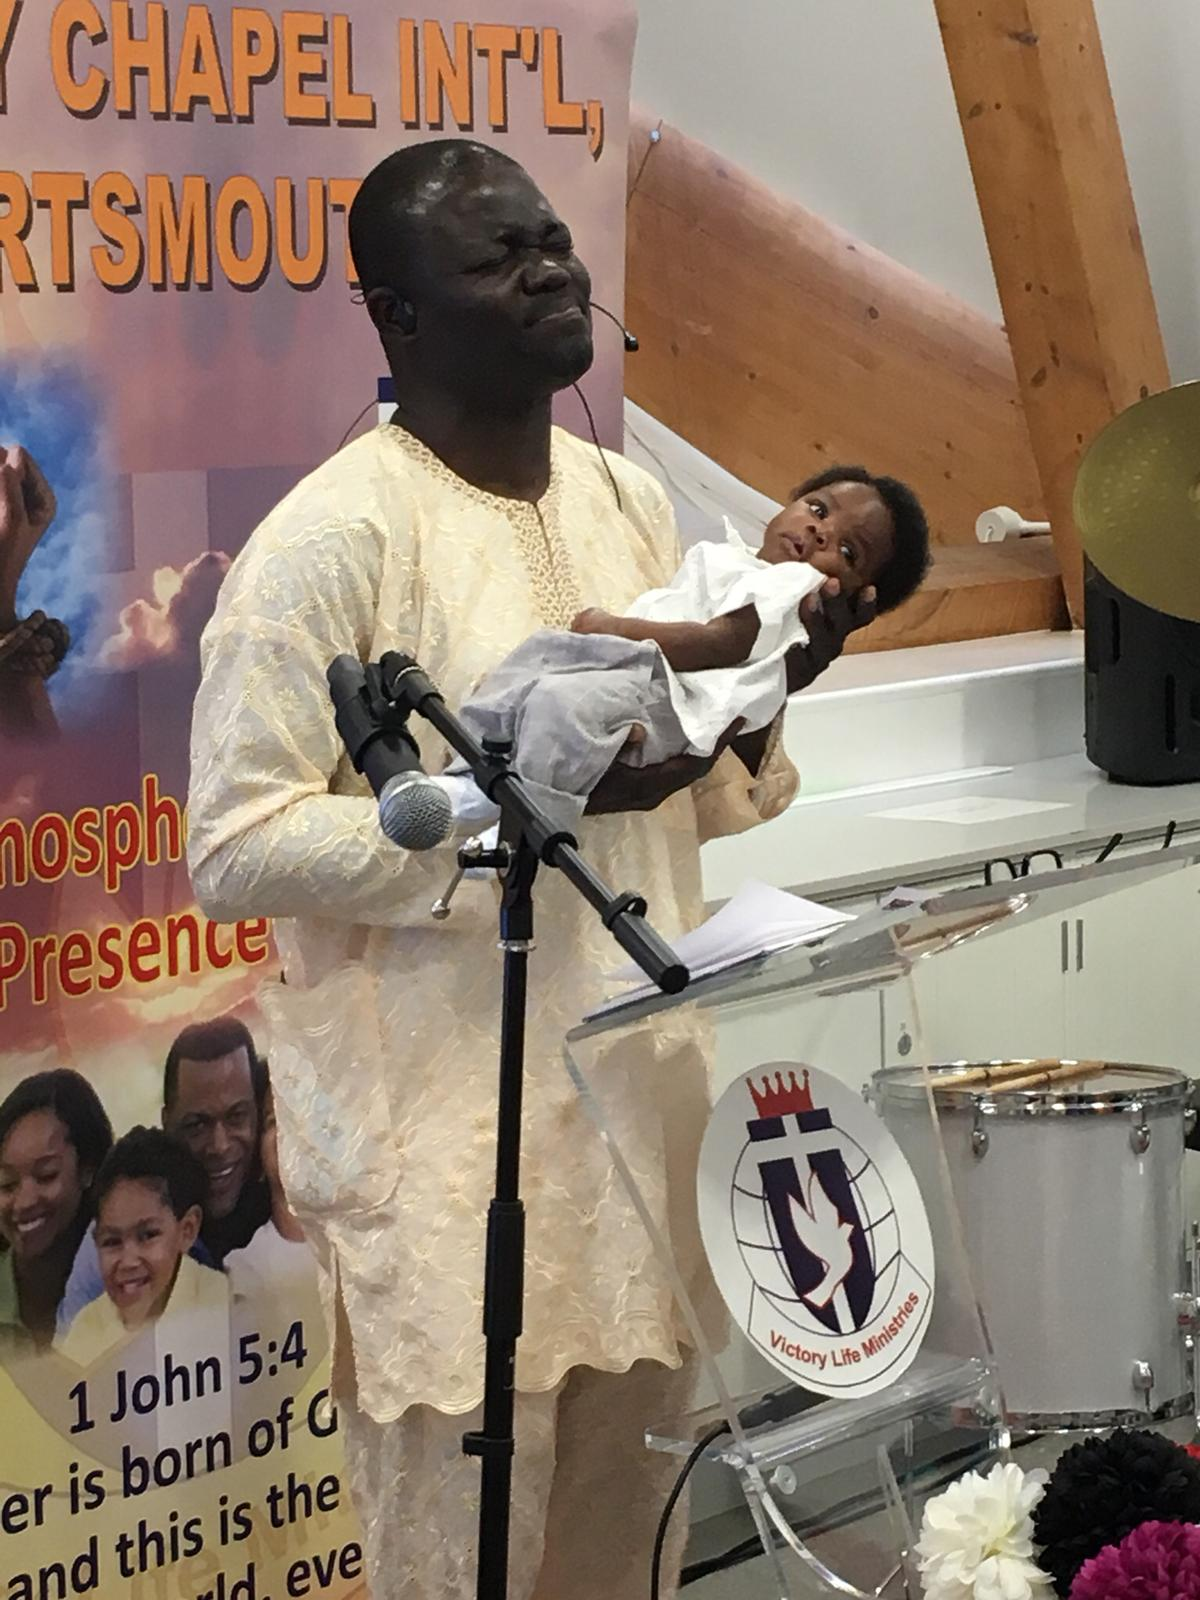 OTHER CHURCH SERVICES, NAMING AND CHILD DEDICATION